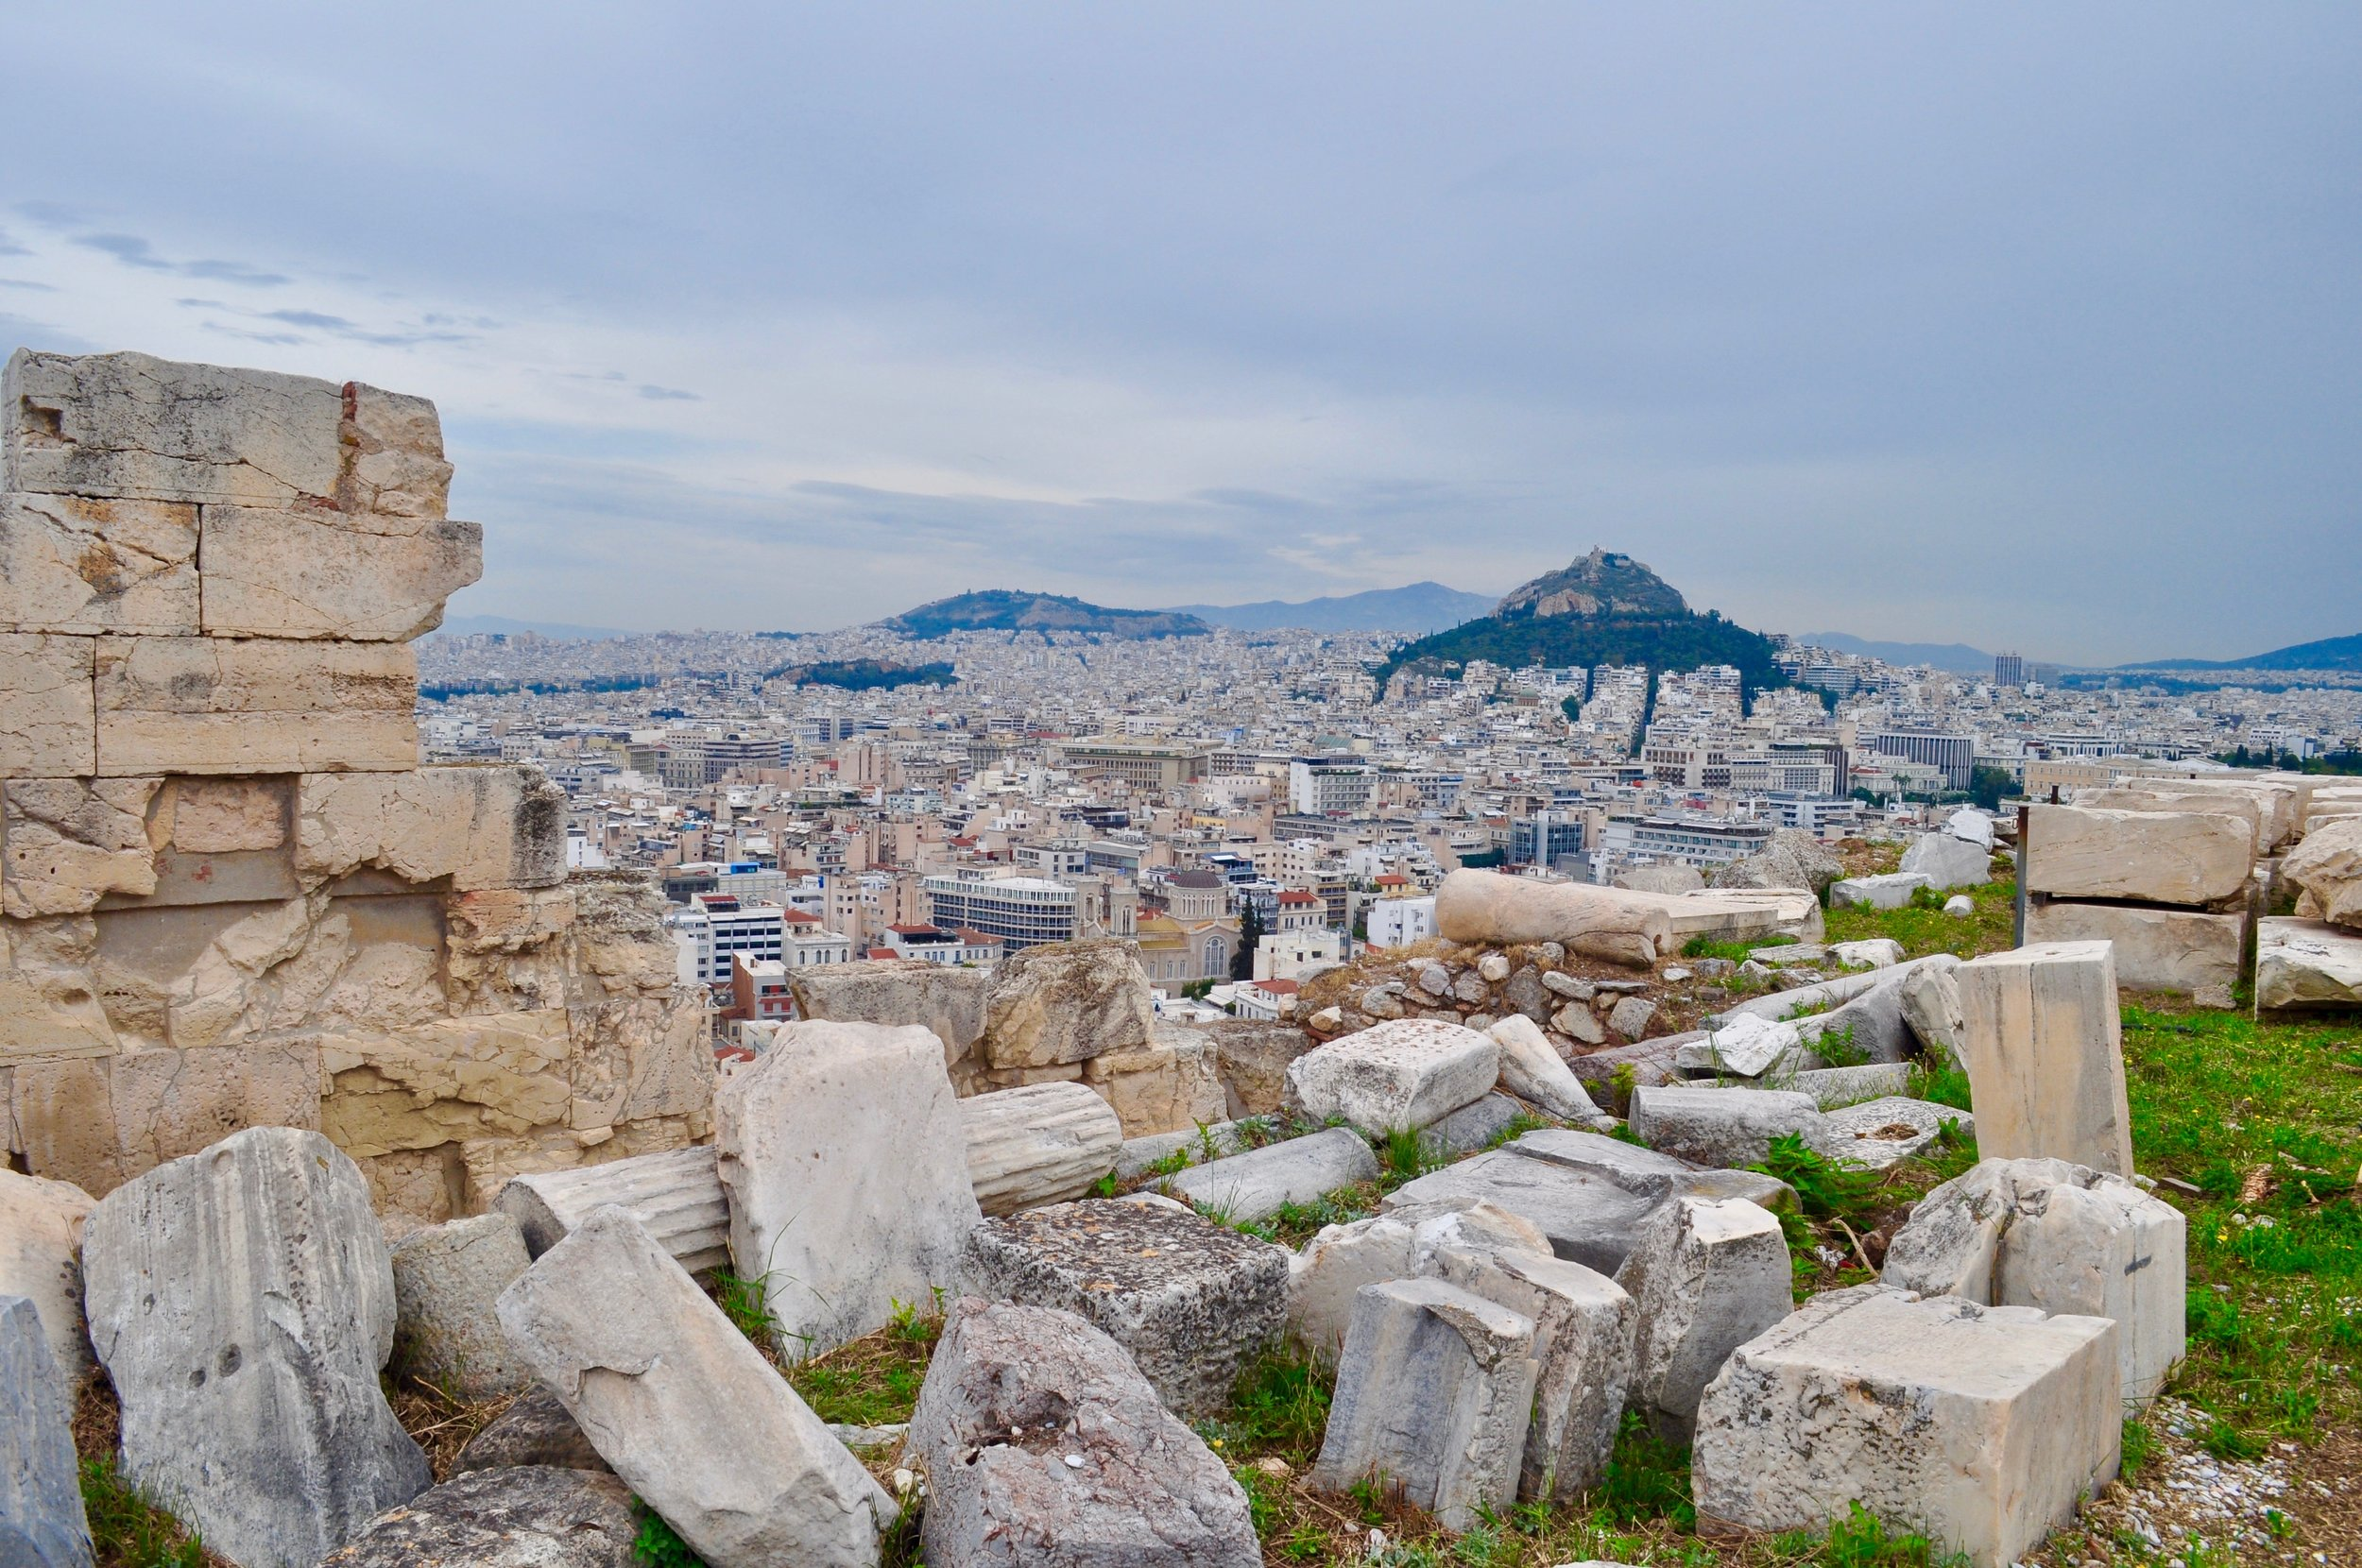 Exploring the Greek Isles on a Cruise - A Happy Passport #athens #greece #cruise